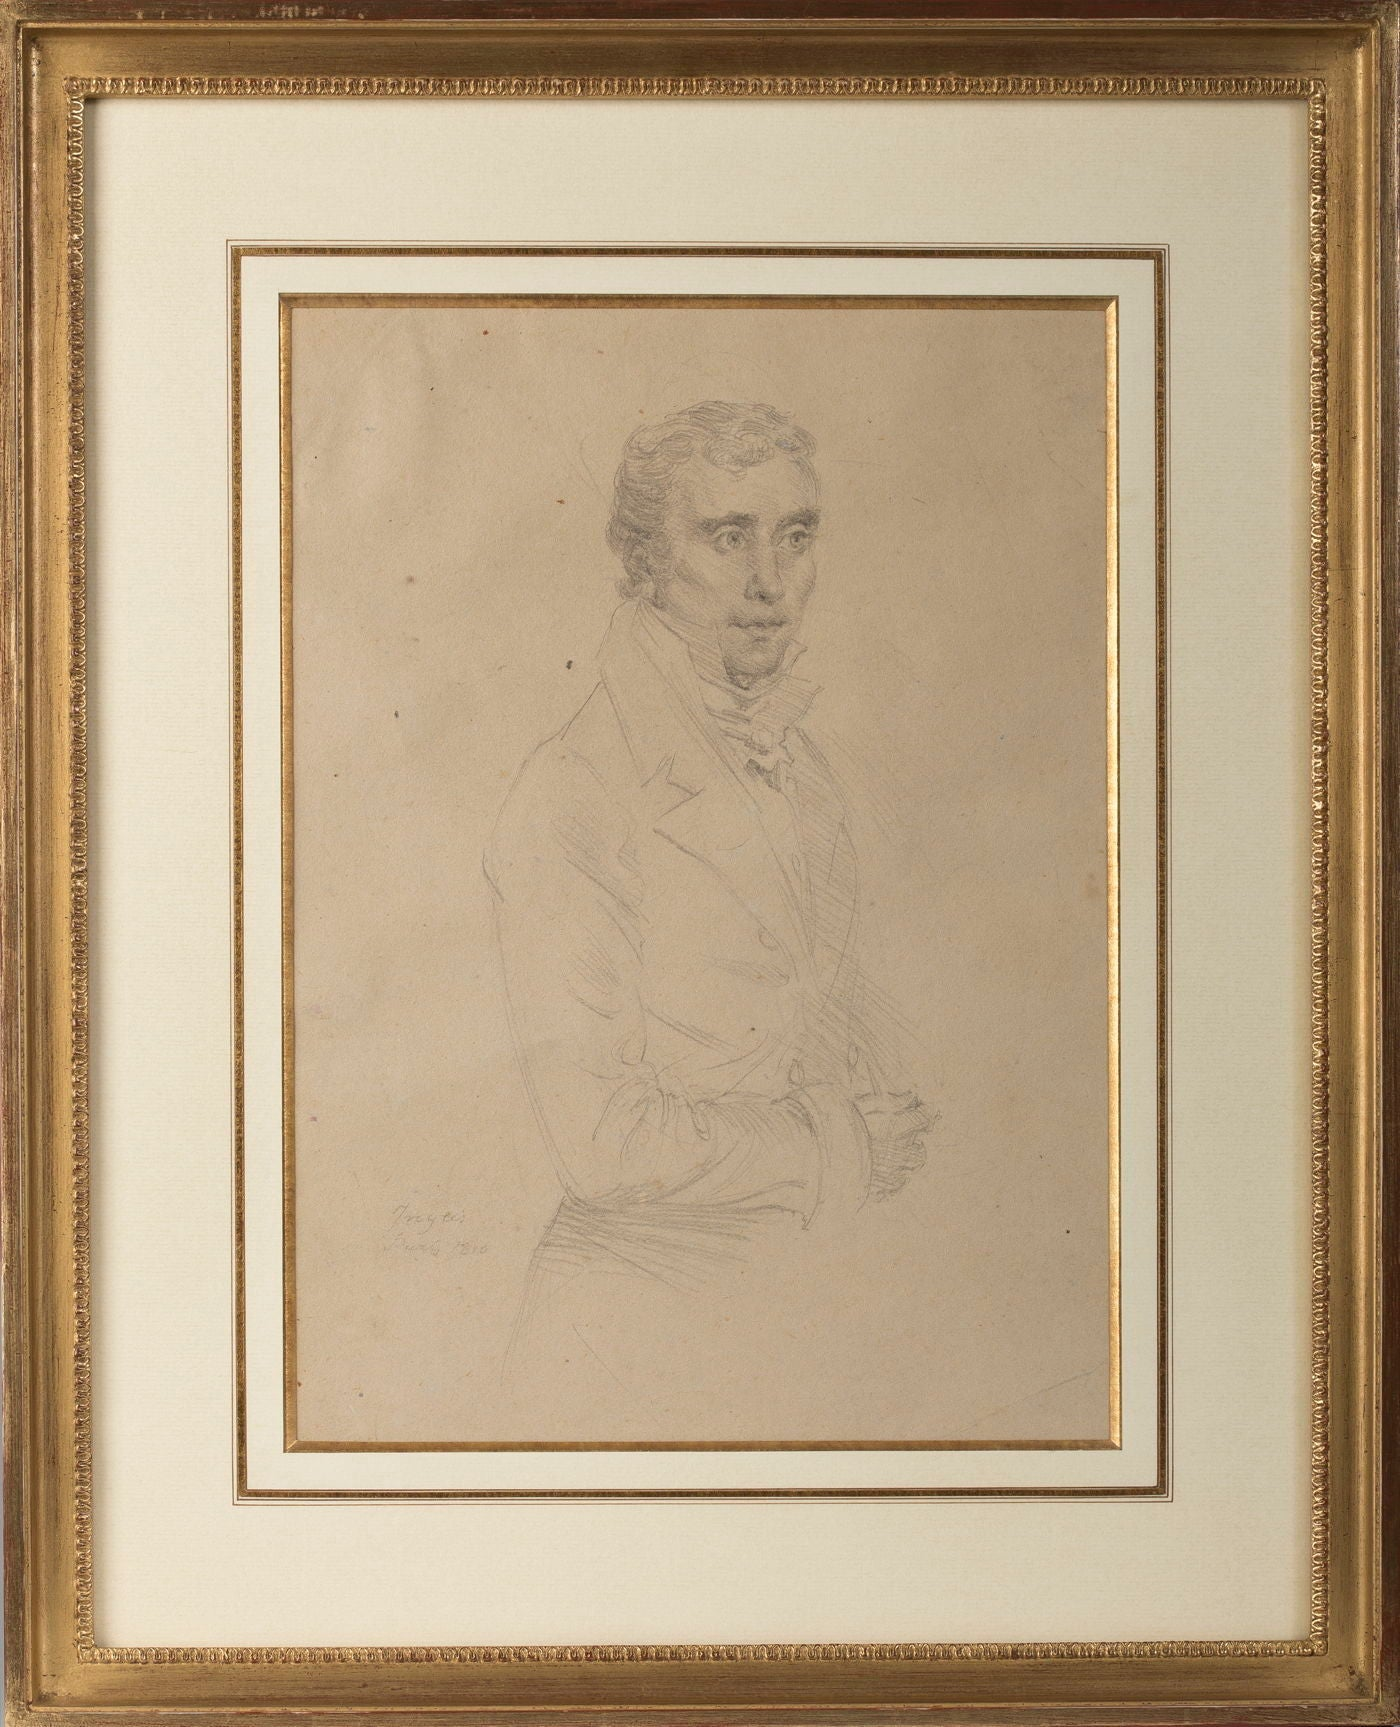 Drawing, Portrait of a Gentleman in the manner of Ingres, French School